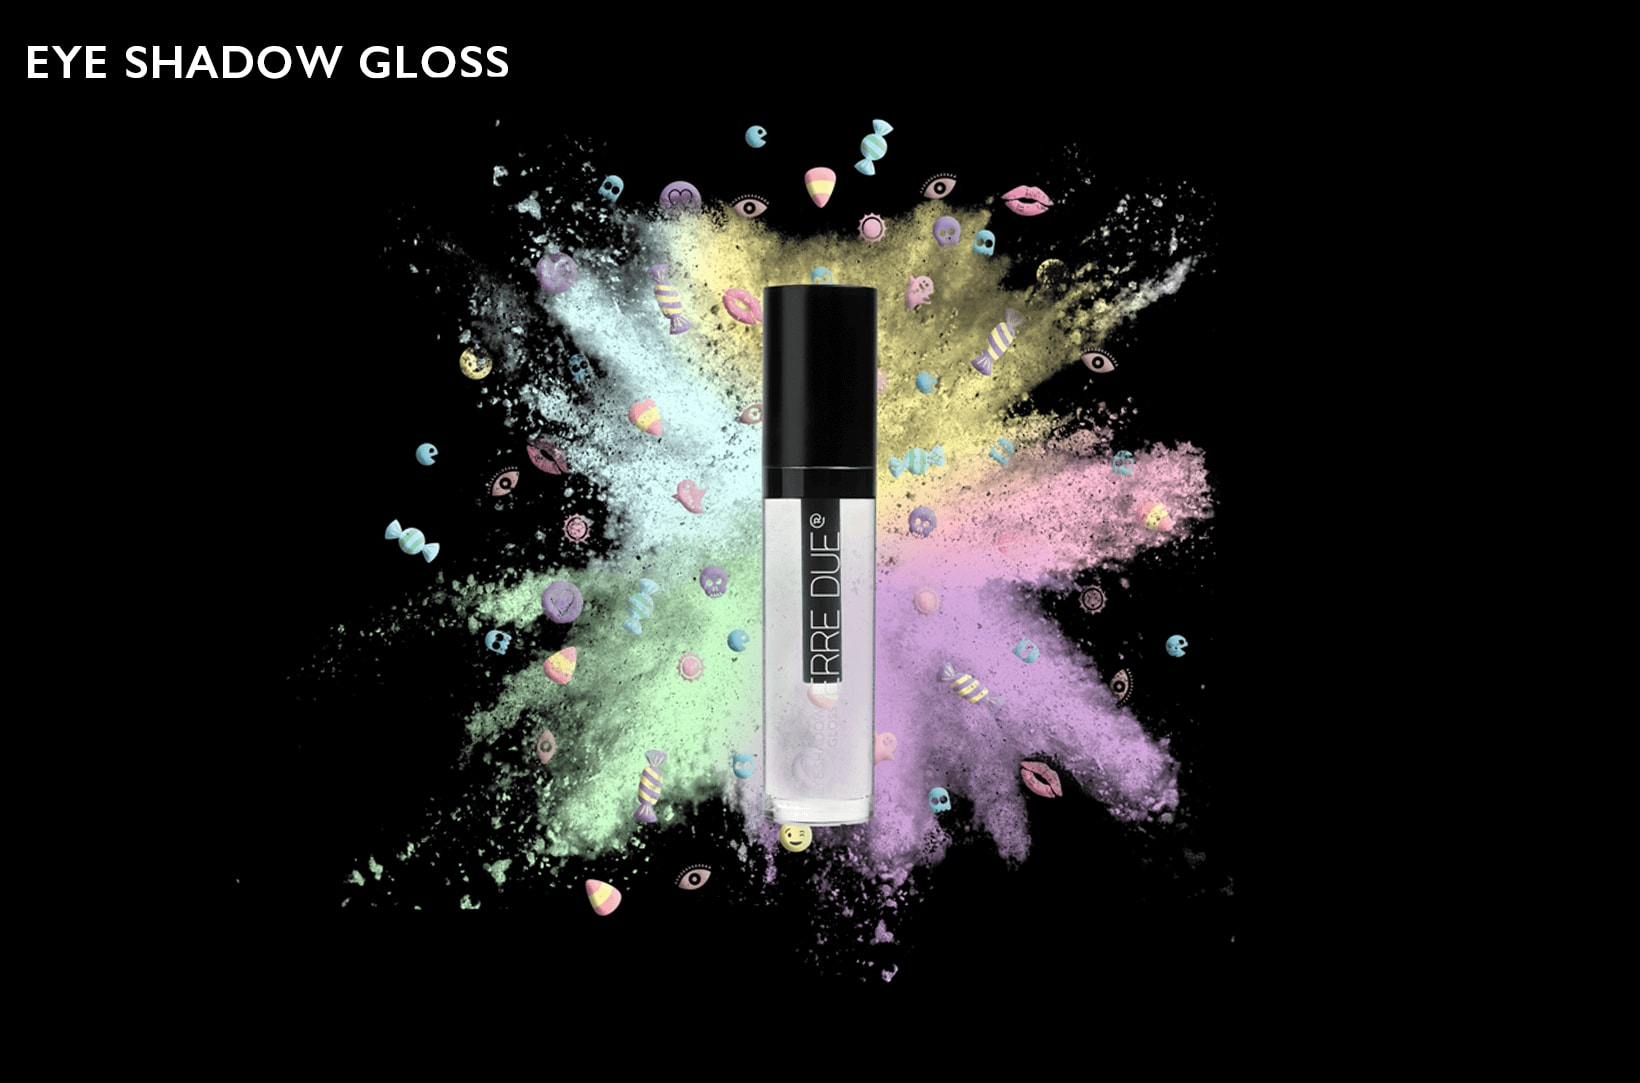 Eye Shadow Gloss